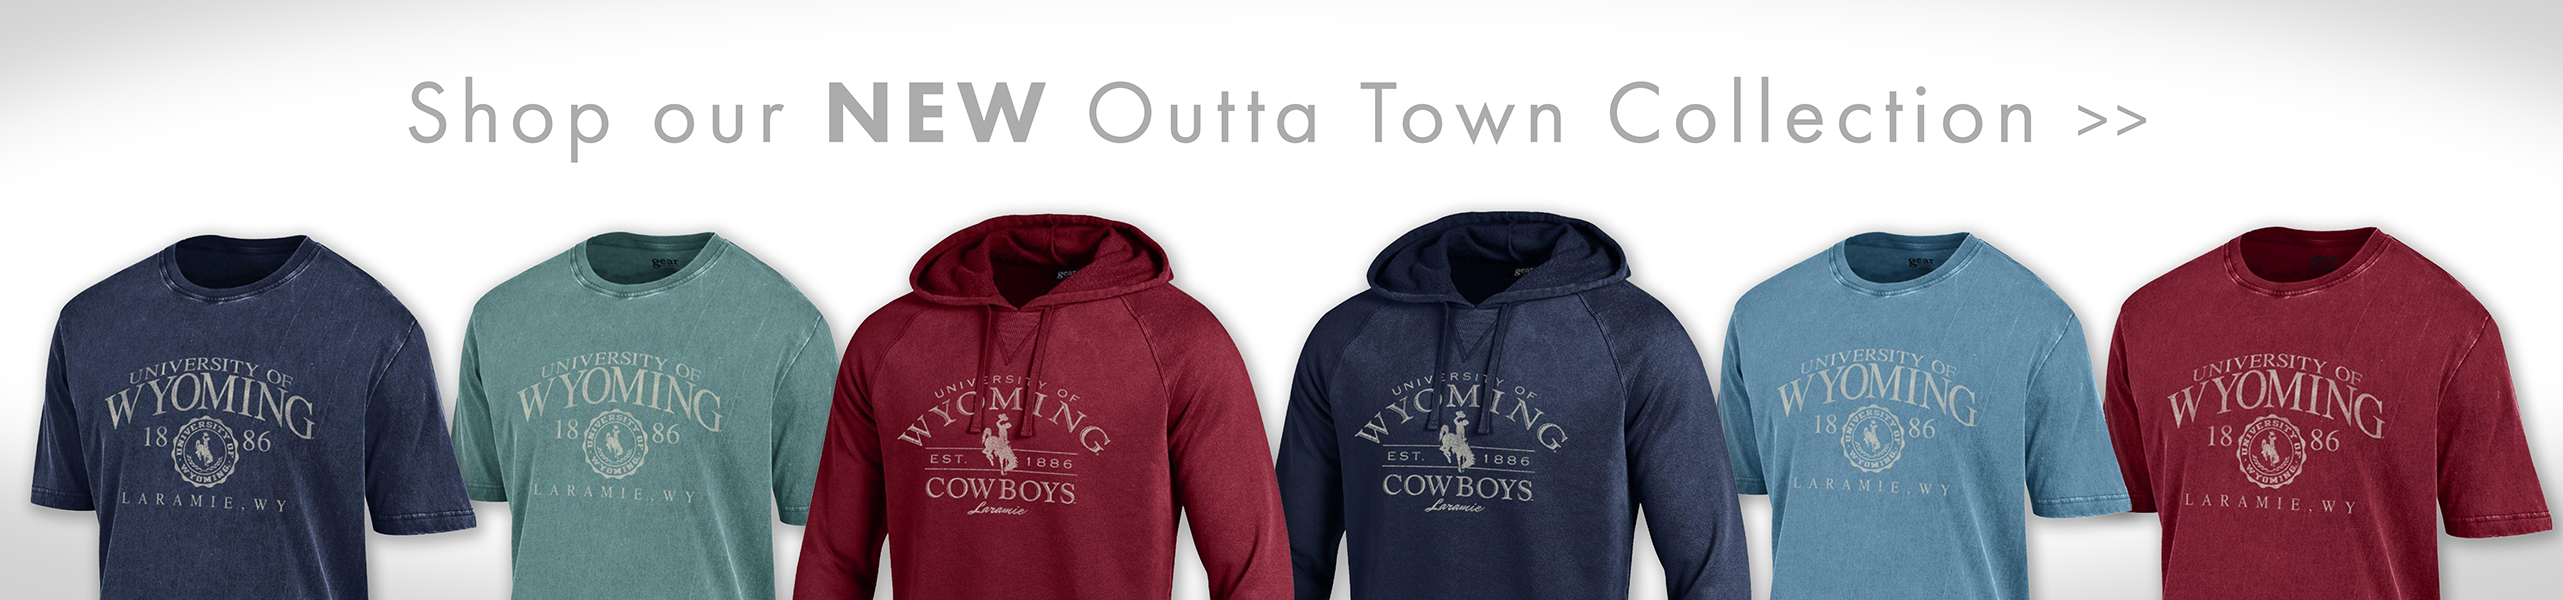 Shop the Outta Town Collection at the University Store!